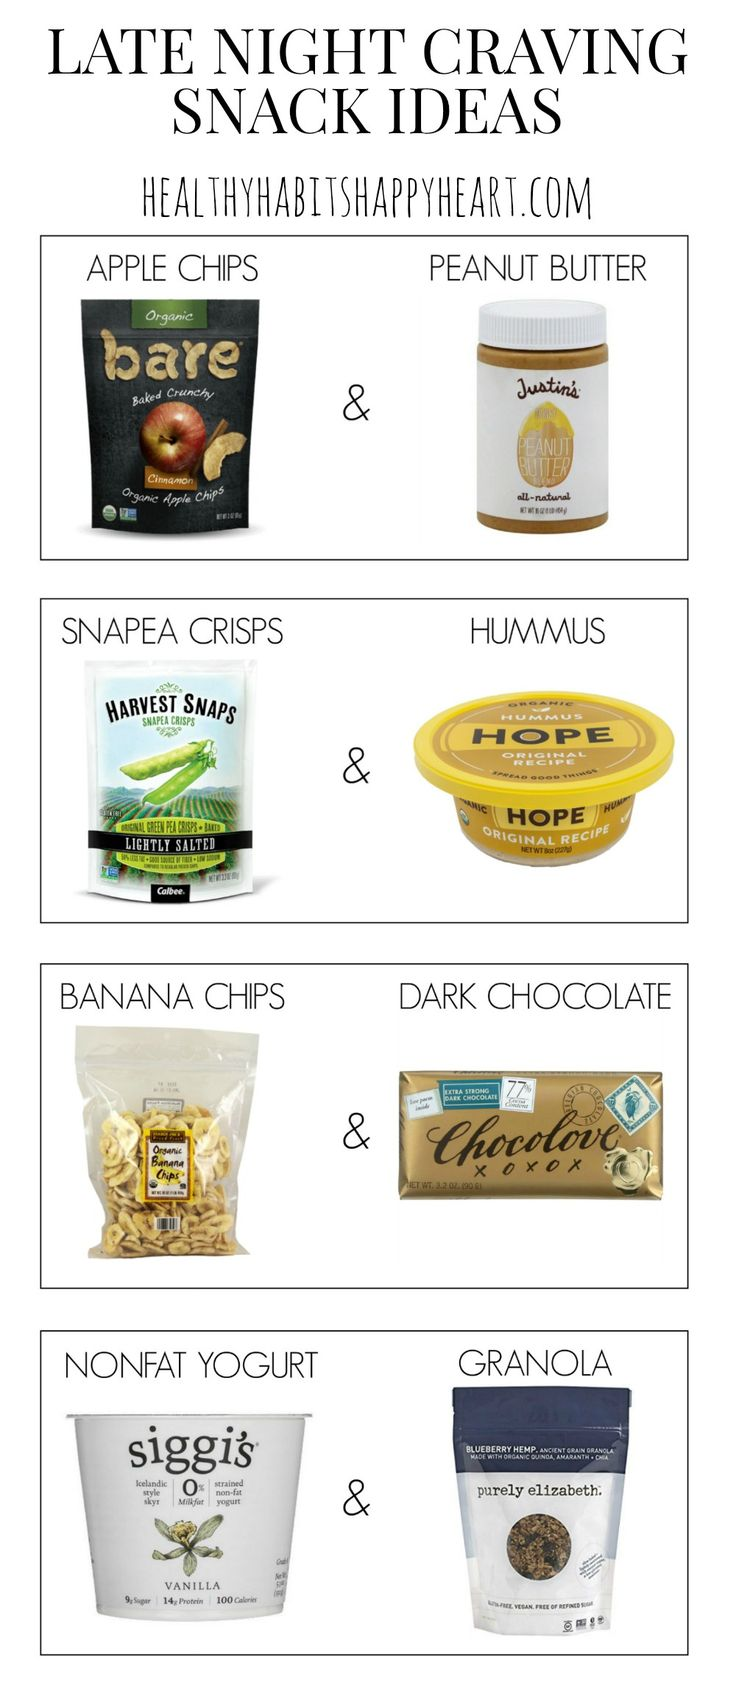 Late night craving snack ideas! Perfect for when you want ice cream but need something healthier! HA!